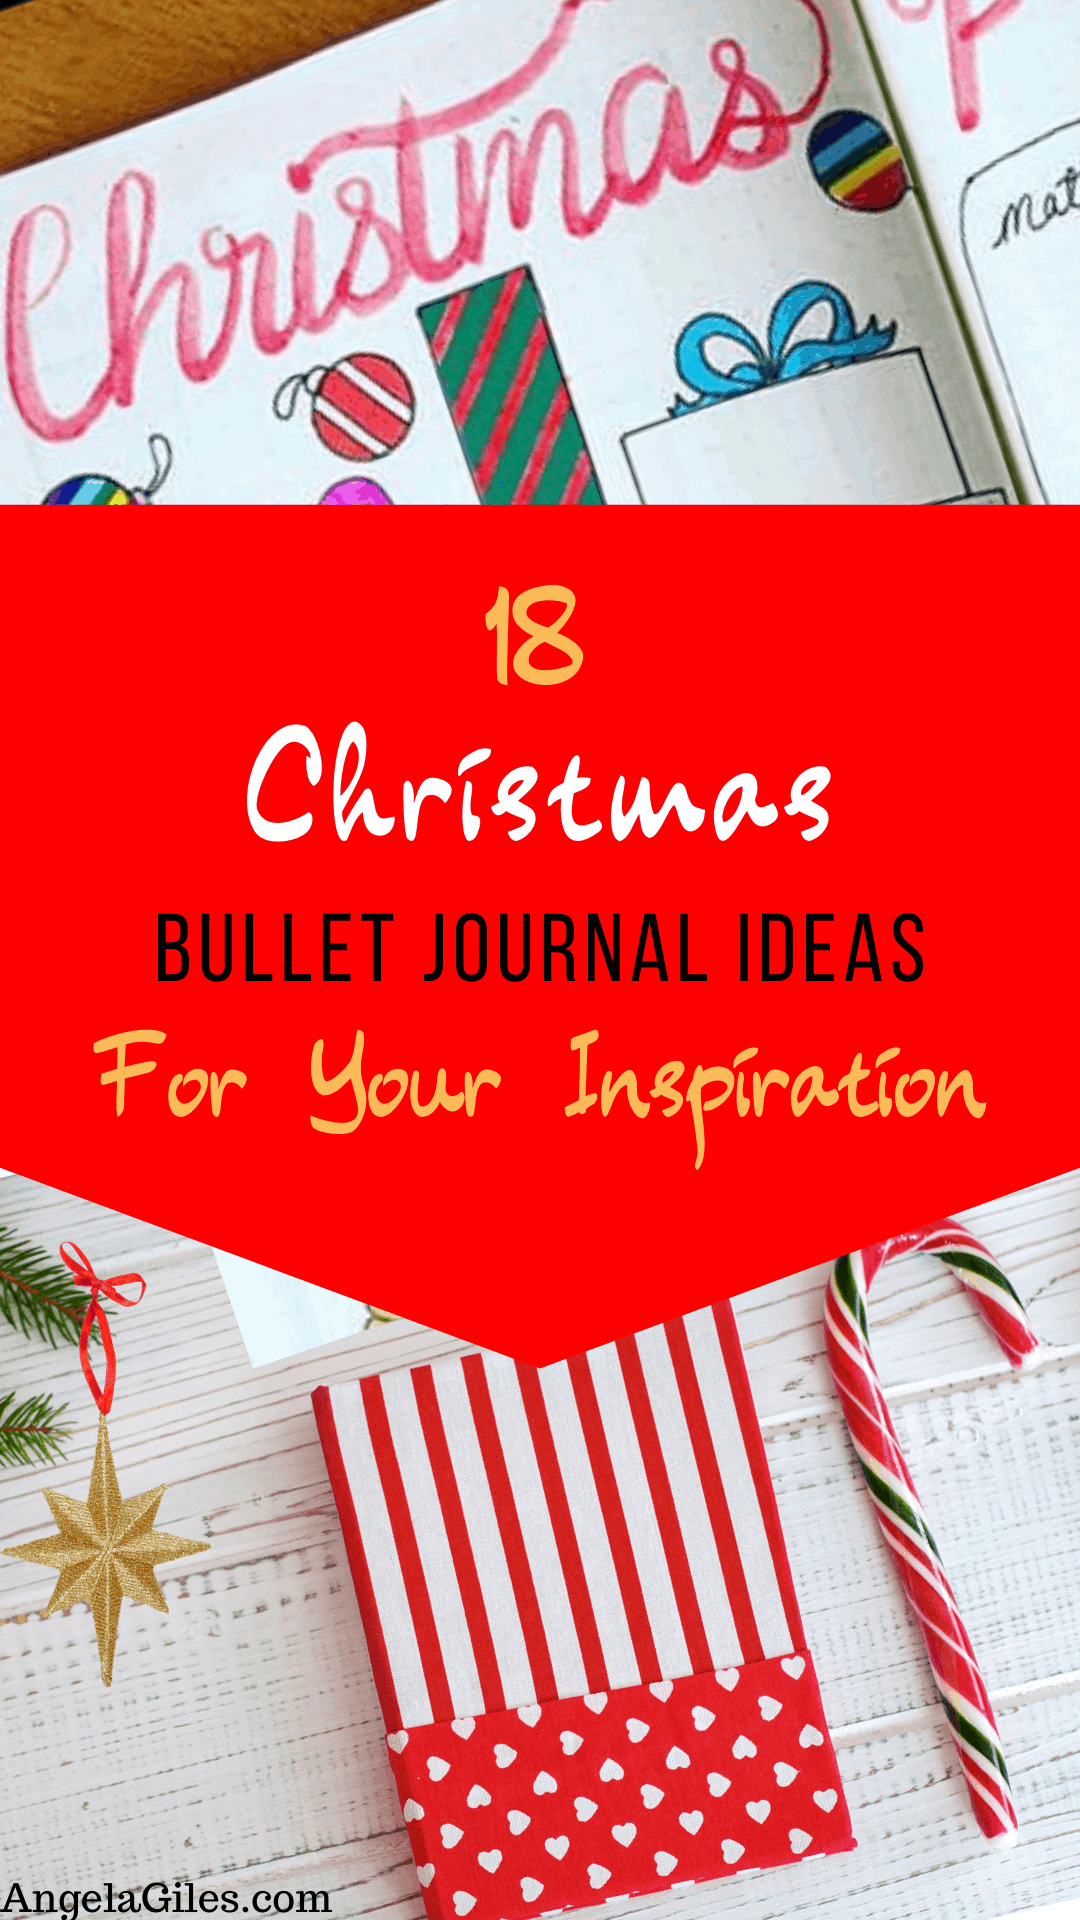 18 Christmas Bullet Journal Ideas For Your Inspiration.